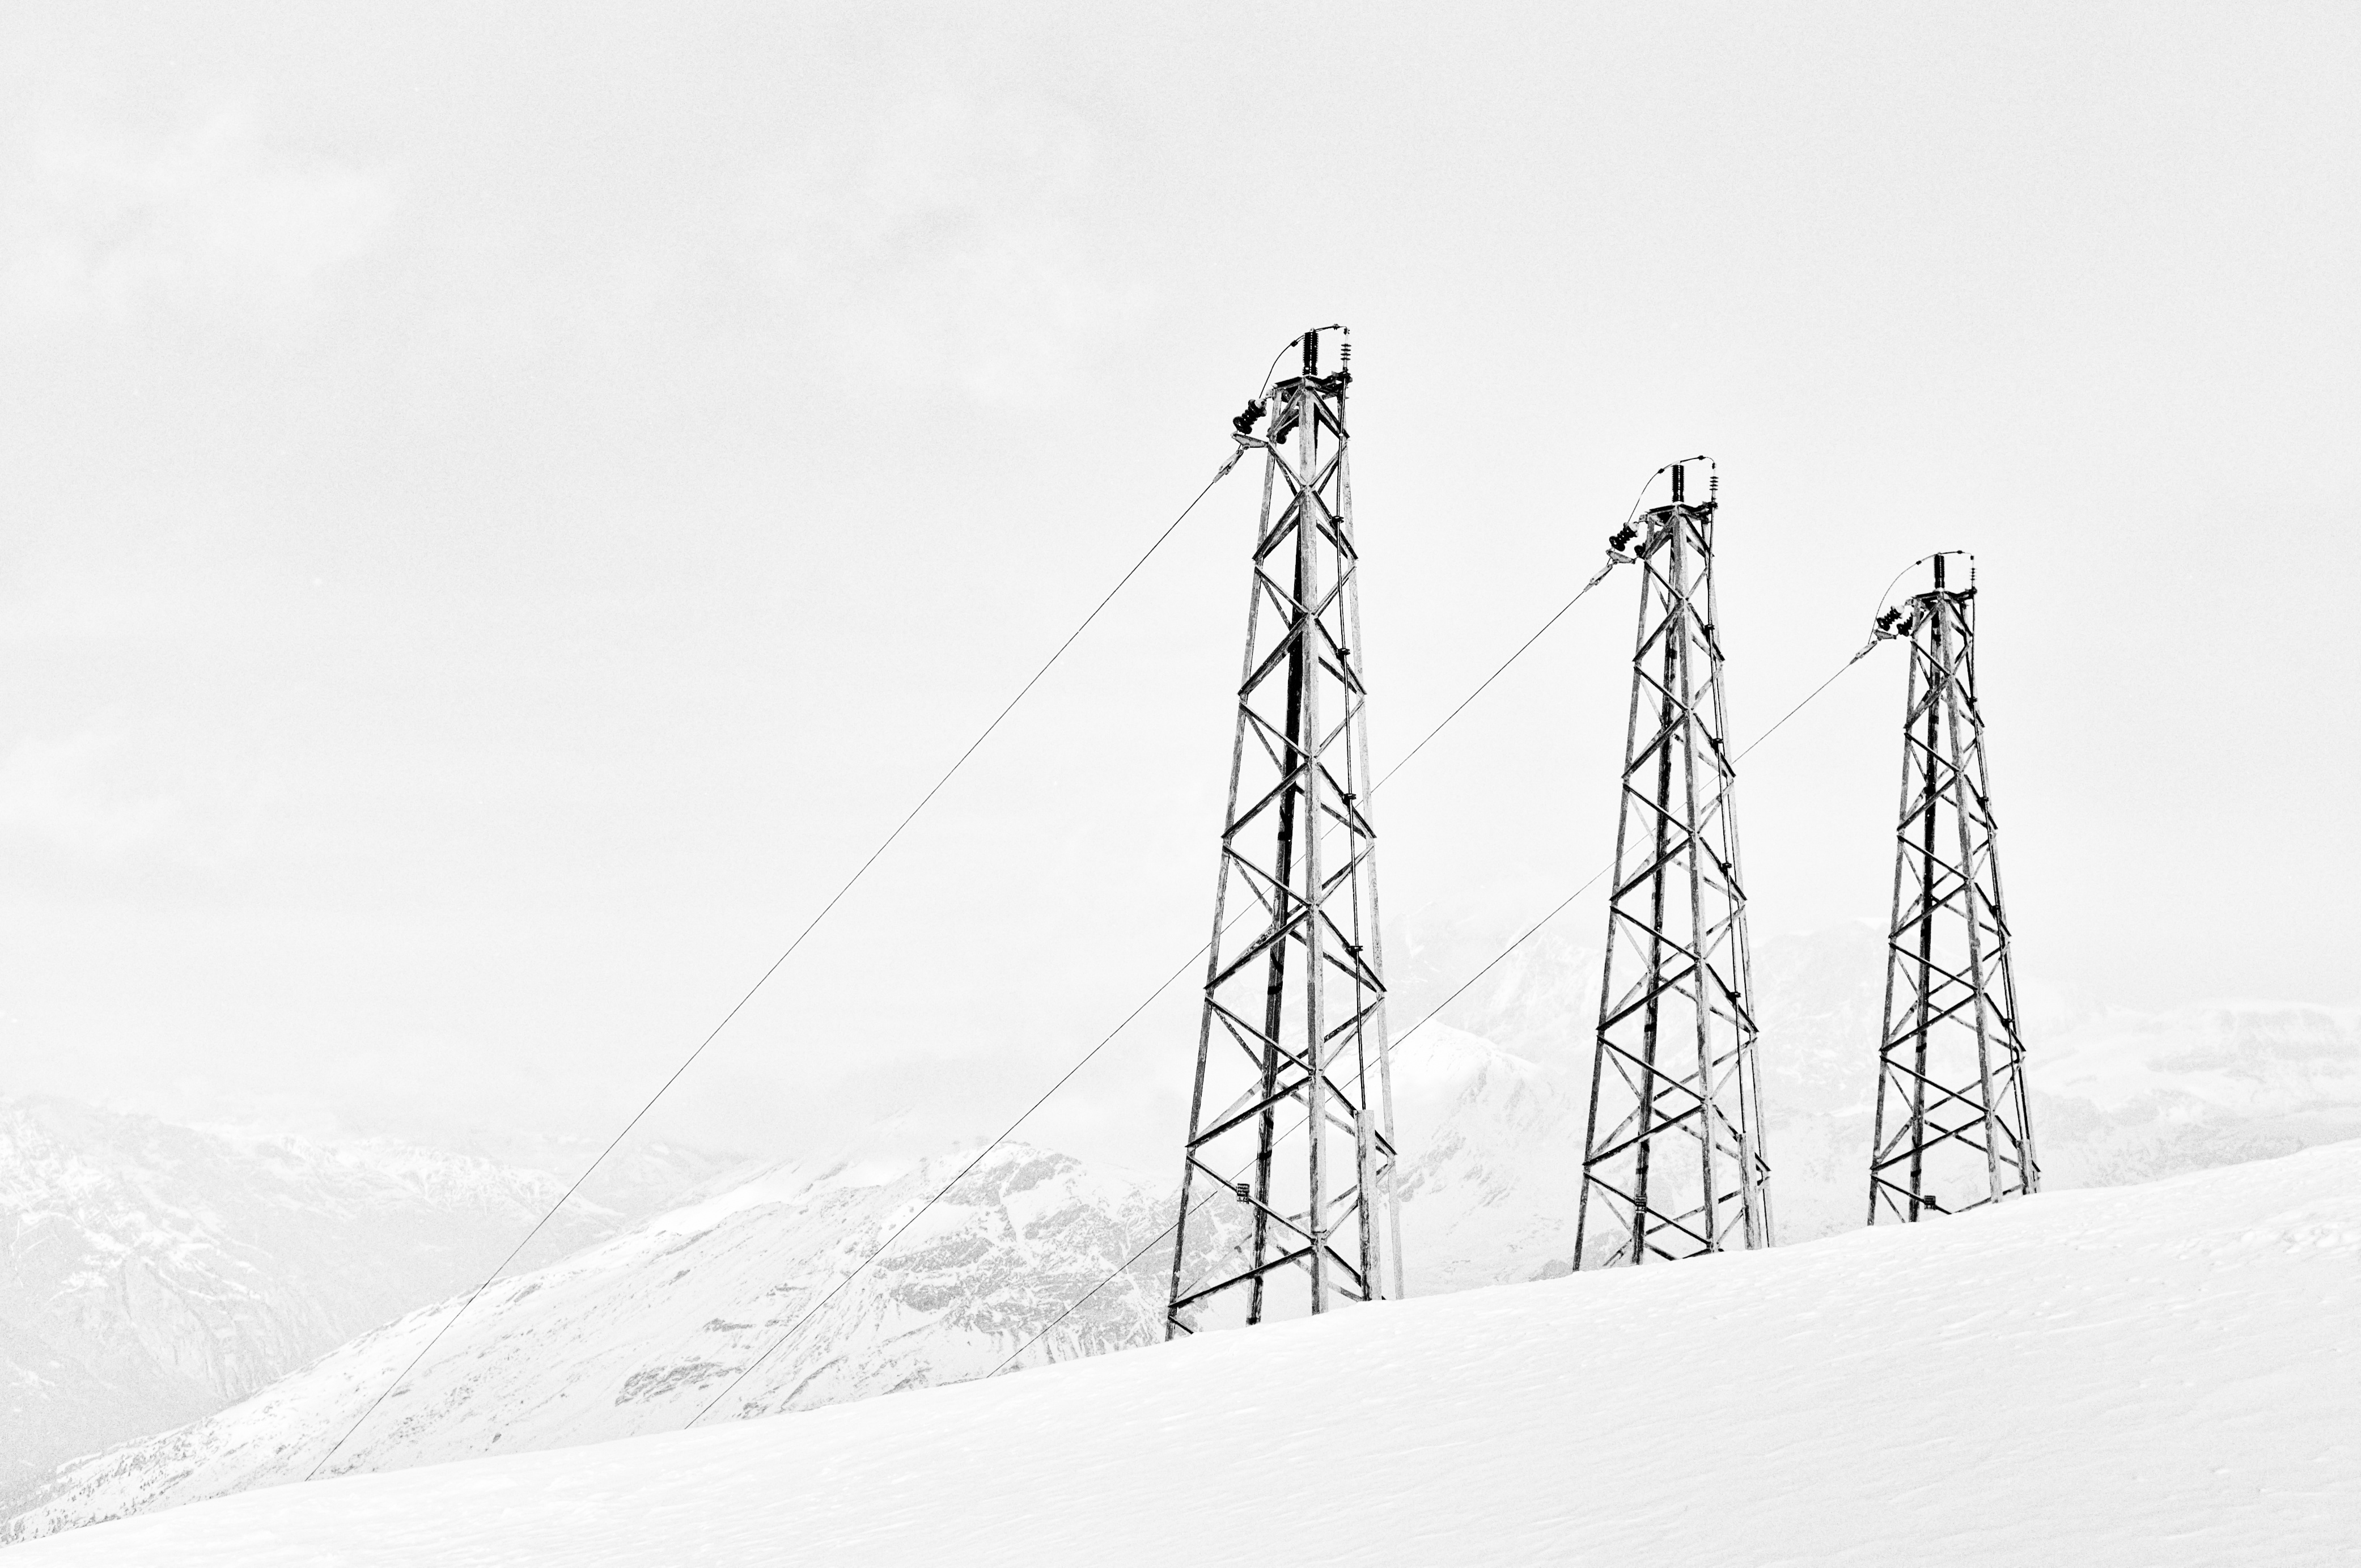 Chairlifts, Chair, Chairlift, Cold, Lift, HQ Photo